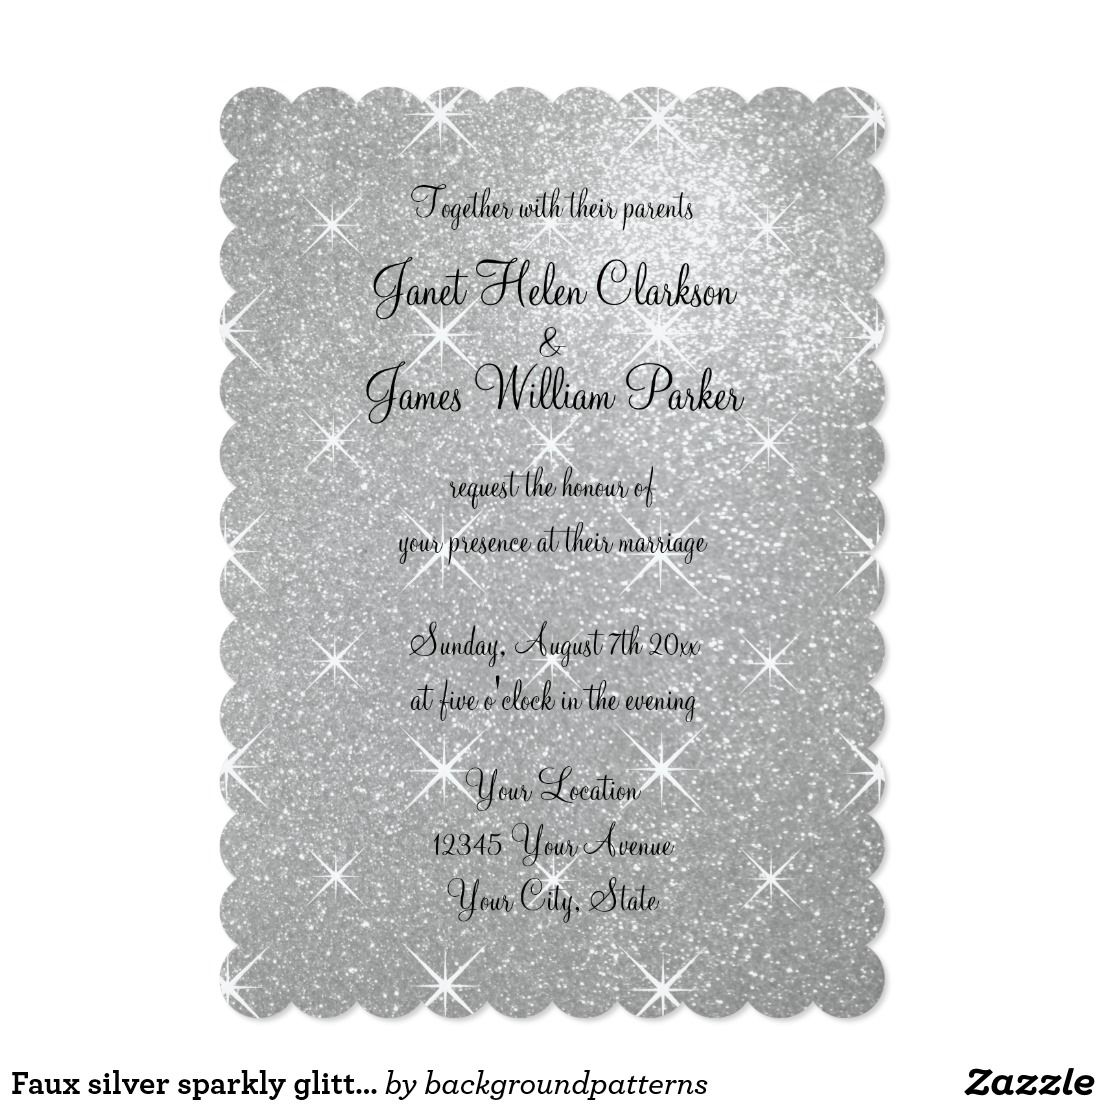 Faux silver sparkly glitter wedding invitations Faux silver sparkly ...